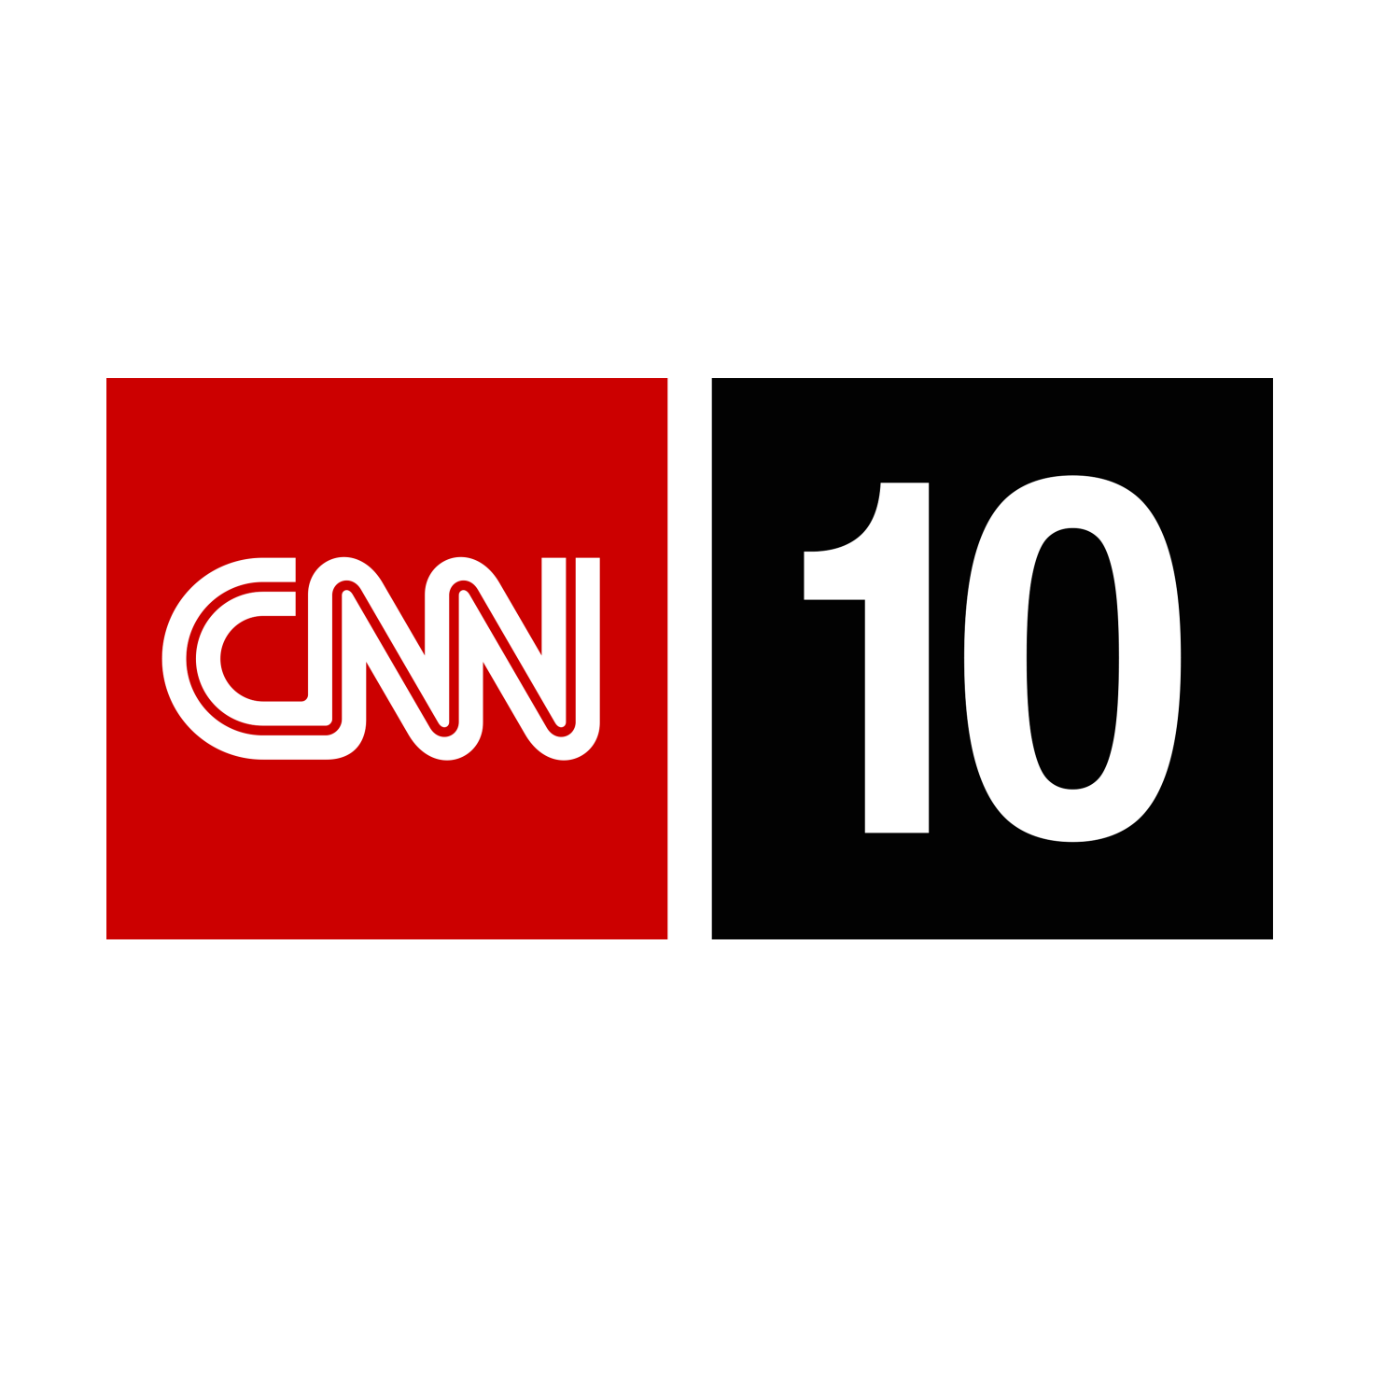 CNN Student News - January 14, 2013